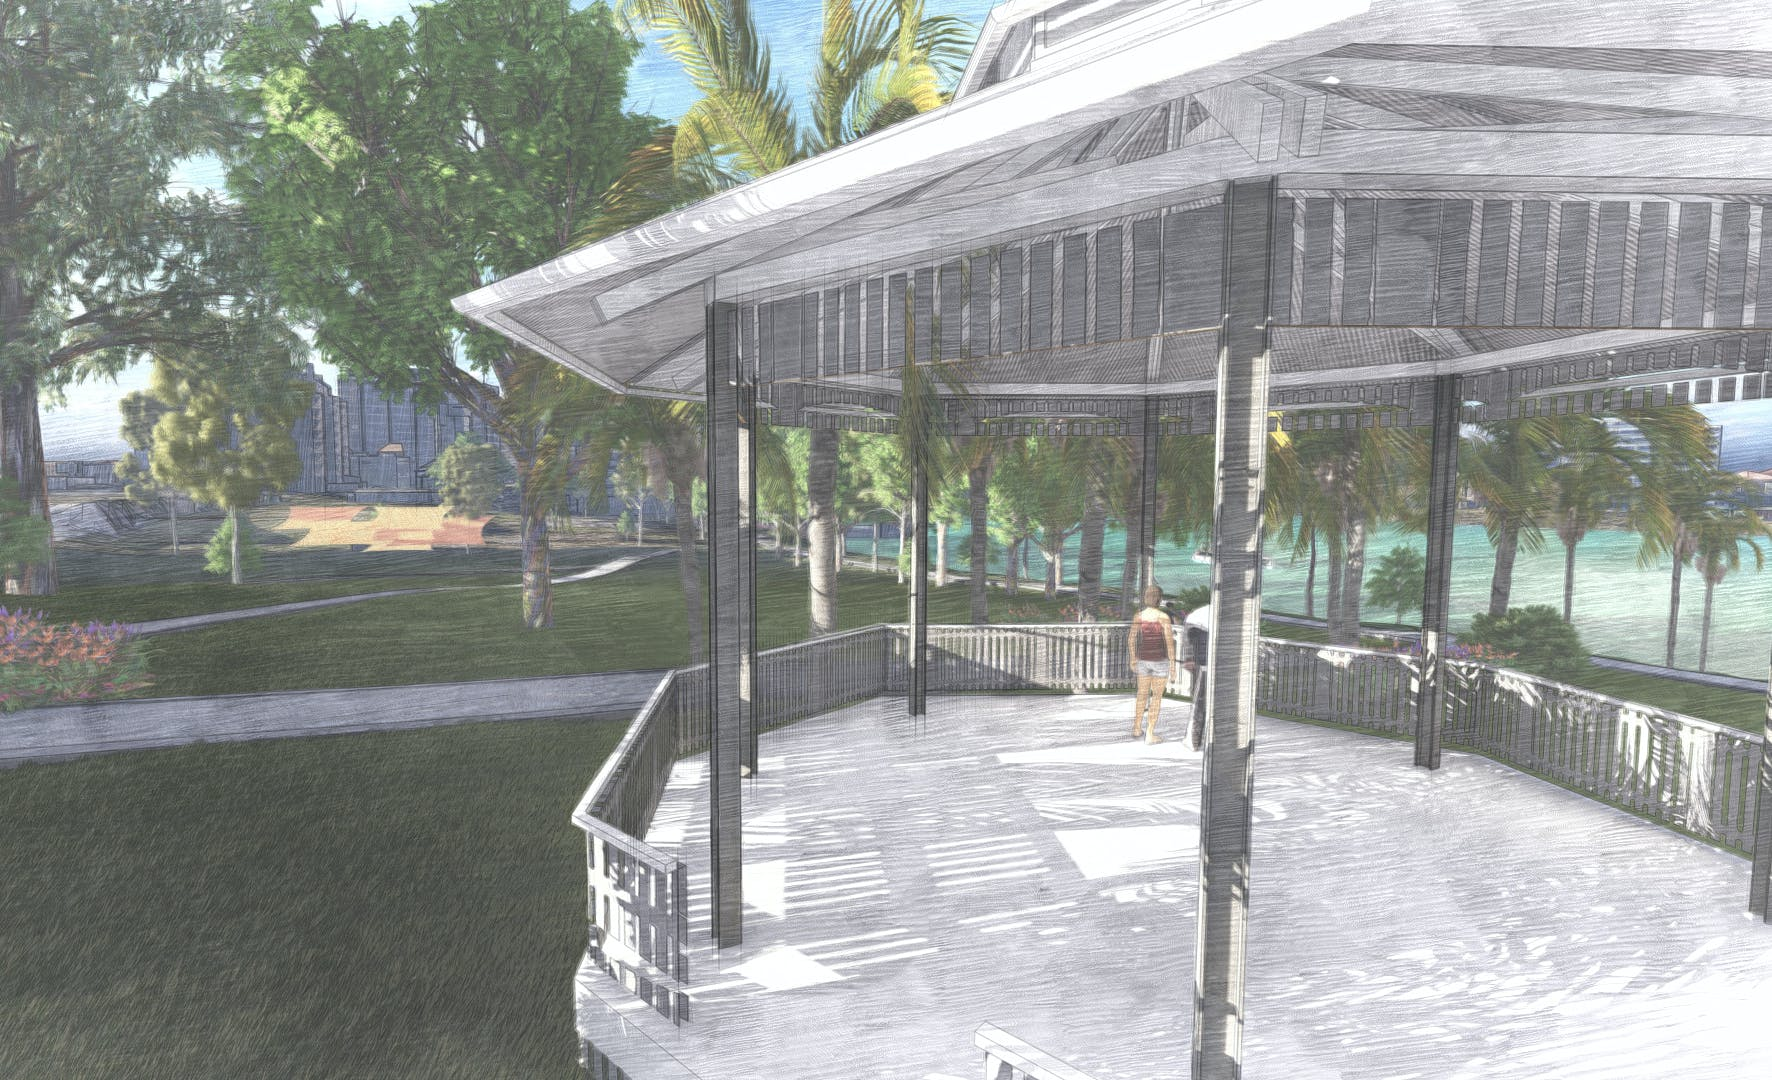 Artist's impression of the proposed bandstand